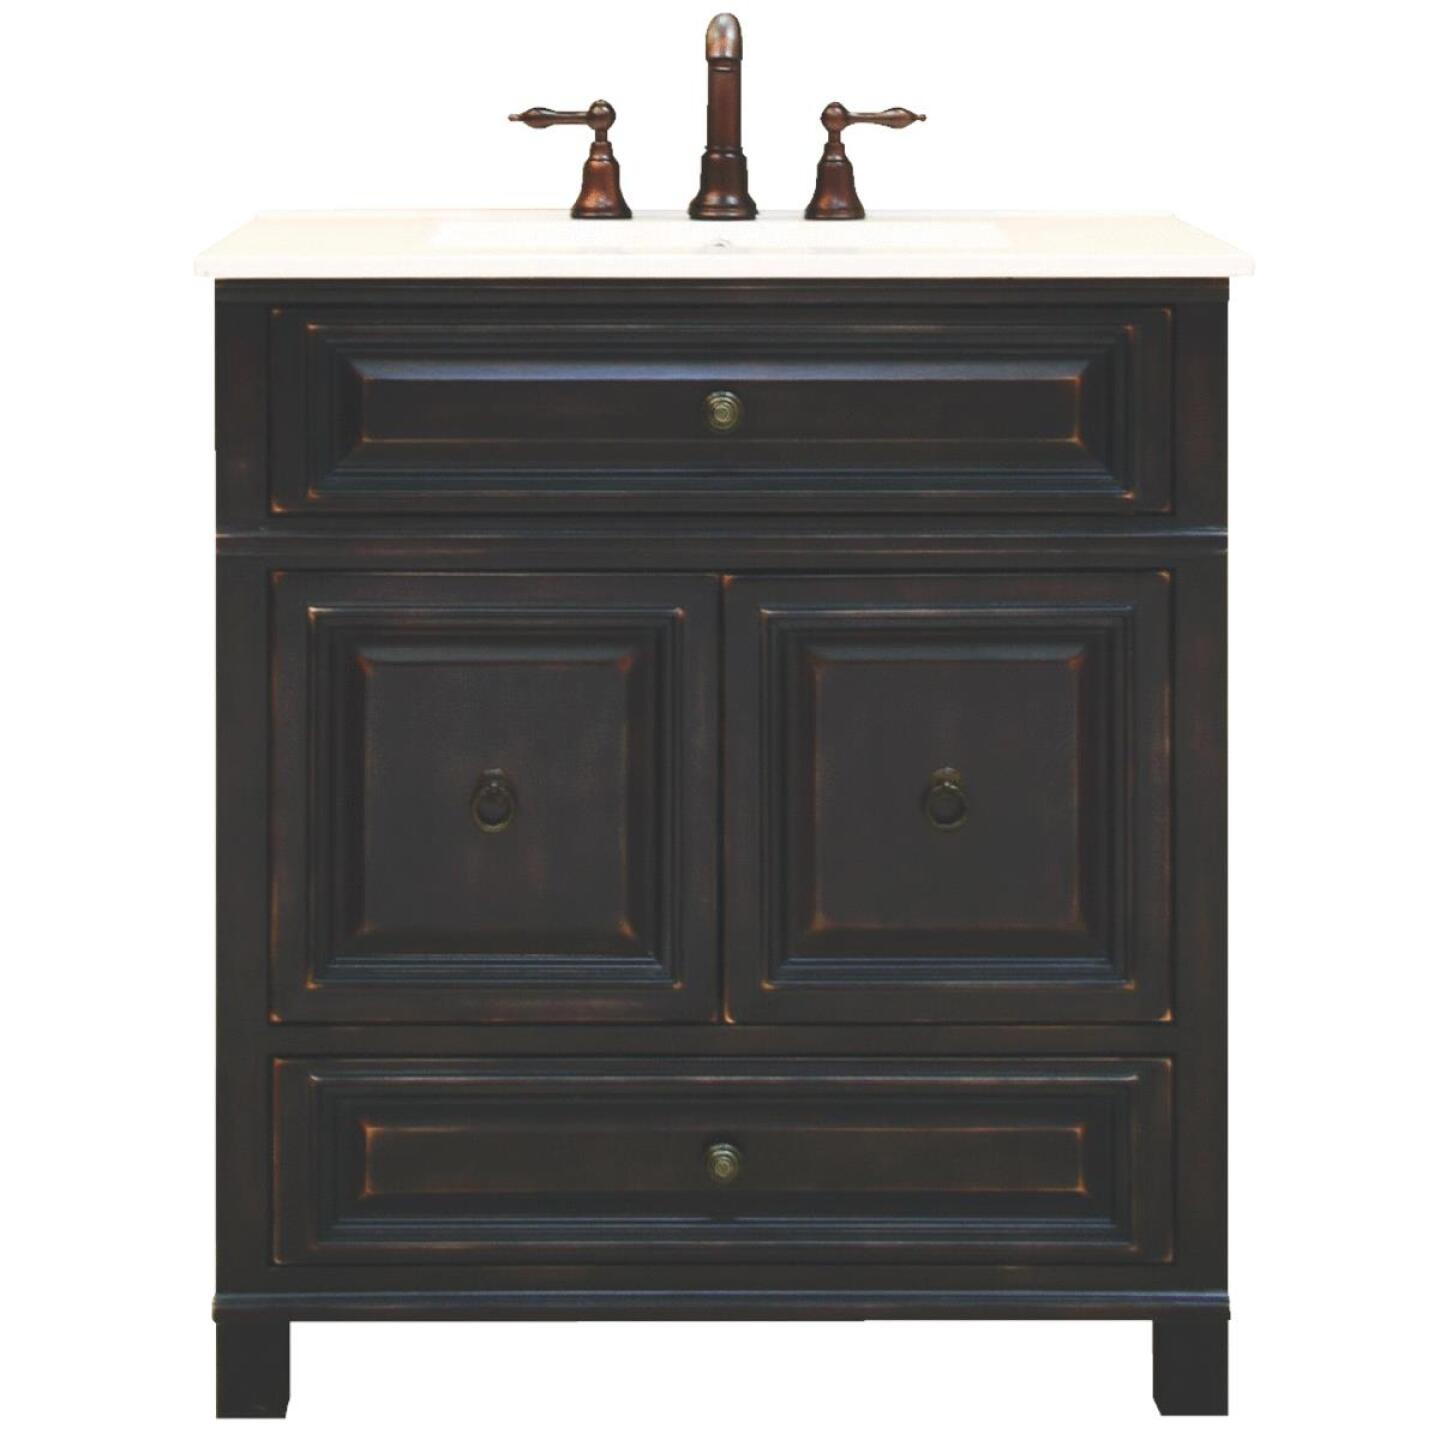 Sunny Wood Barton Hill Black Onyx 30 In. W x 34 In. H x 21 In. D Vanity Base, 2 Door/1 Drawer Image 125